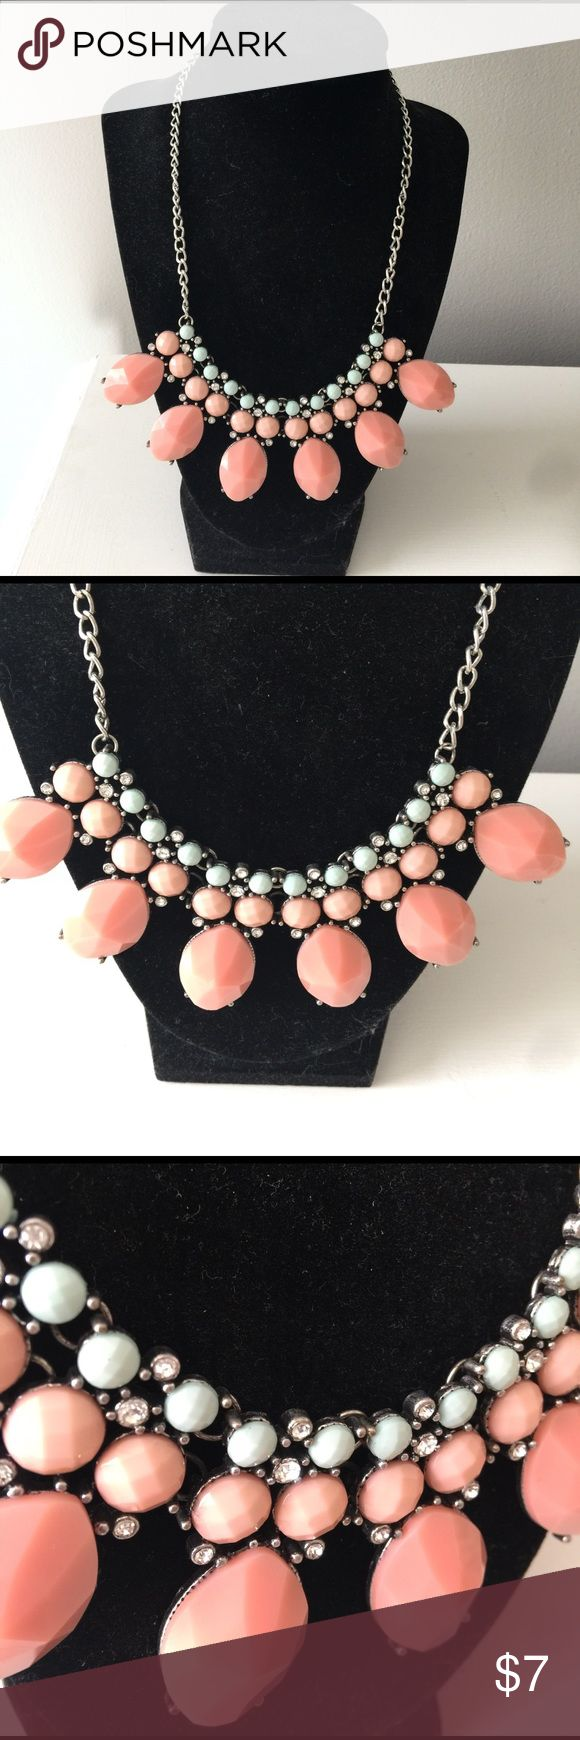 Statement necklace Peach and Turquoise statement necklace. Jewelry Necklaces